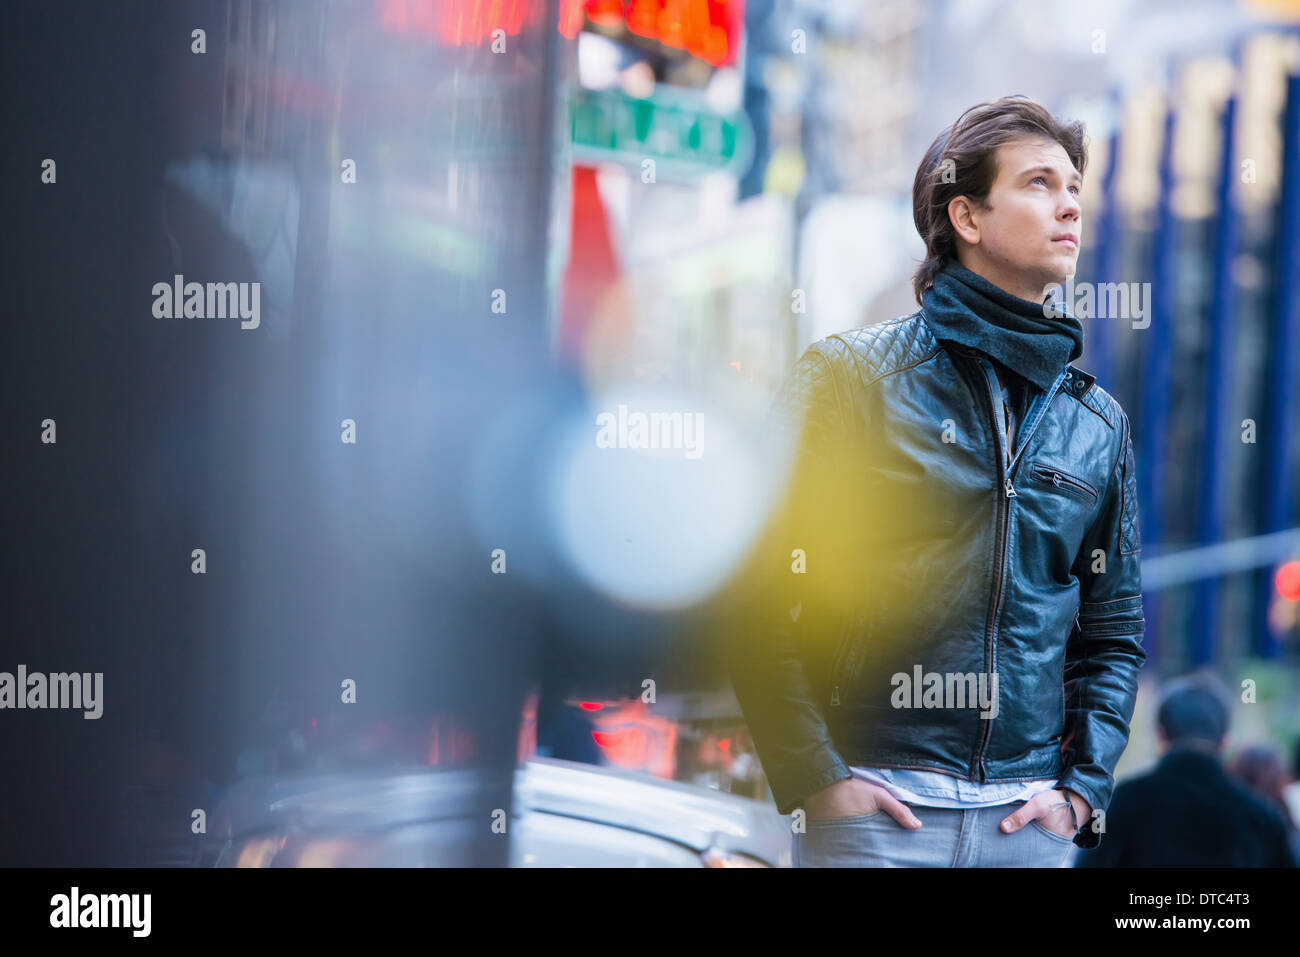 Young male tourist exploring streets, New York City, USA - Stock Image